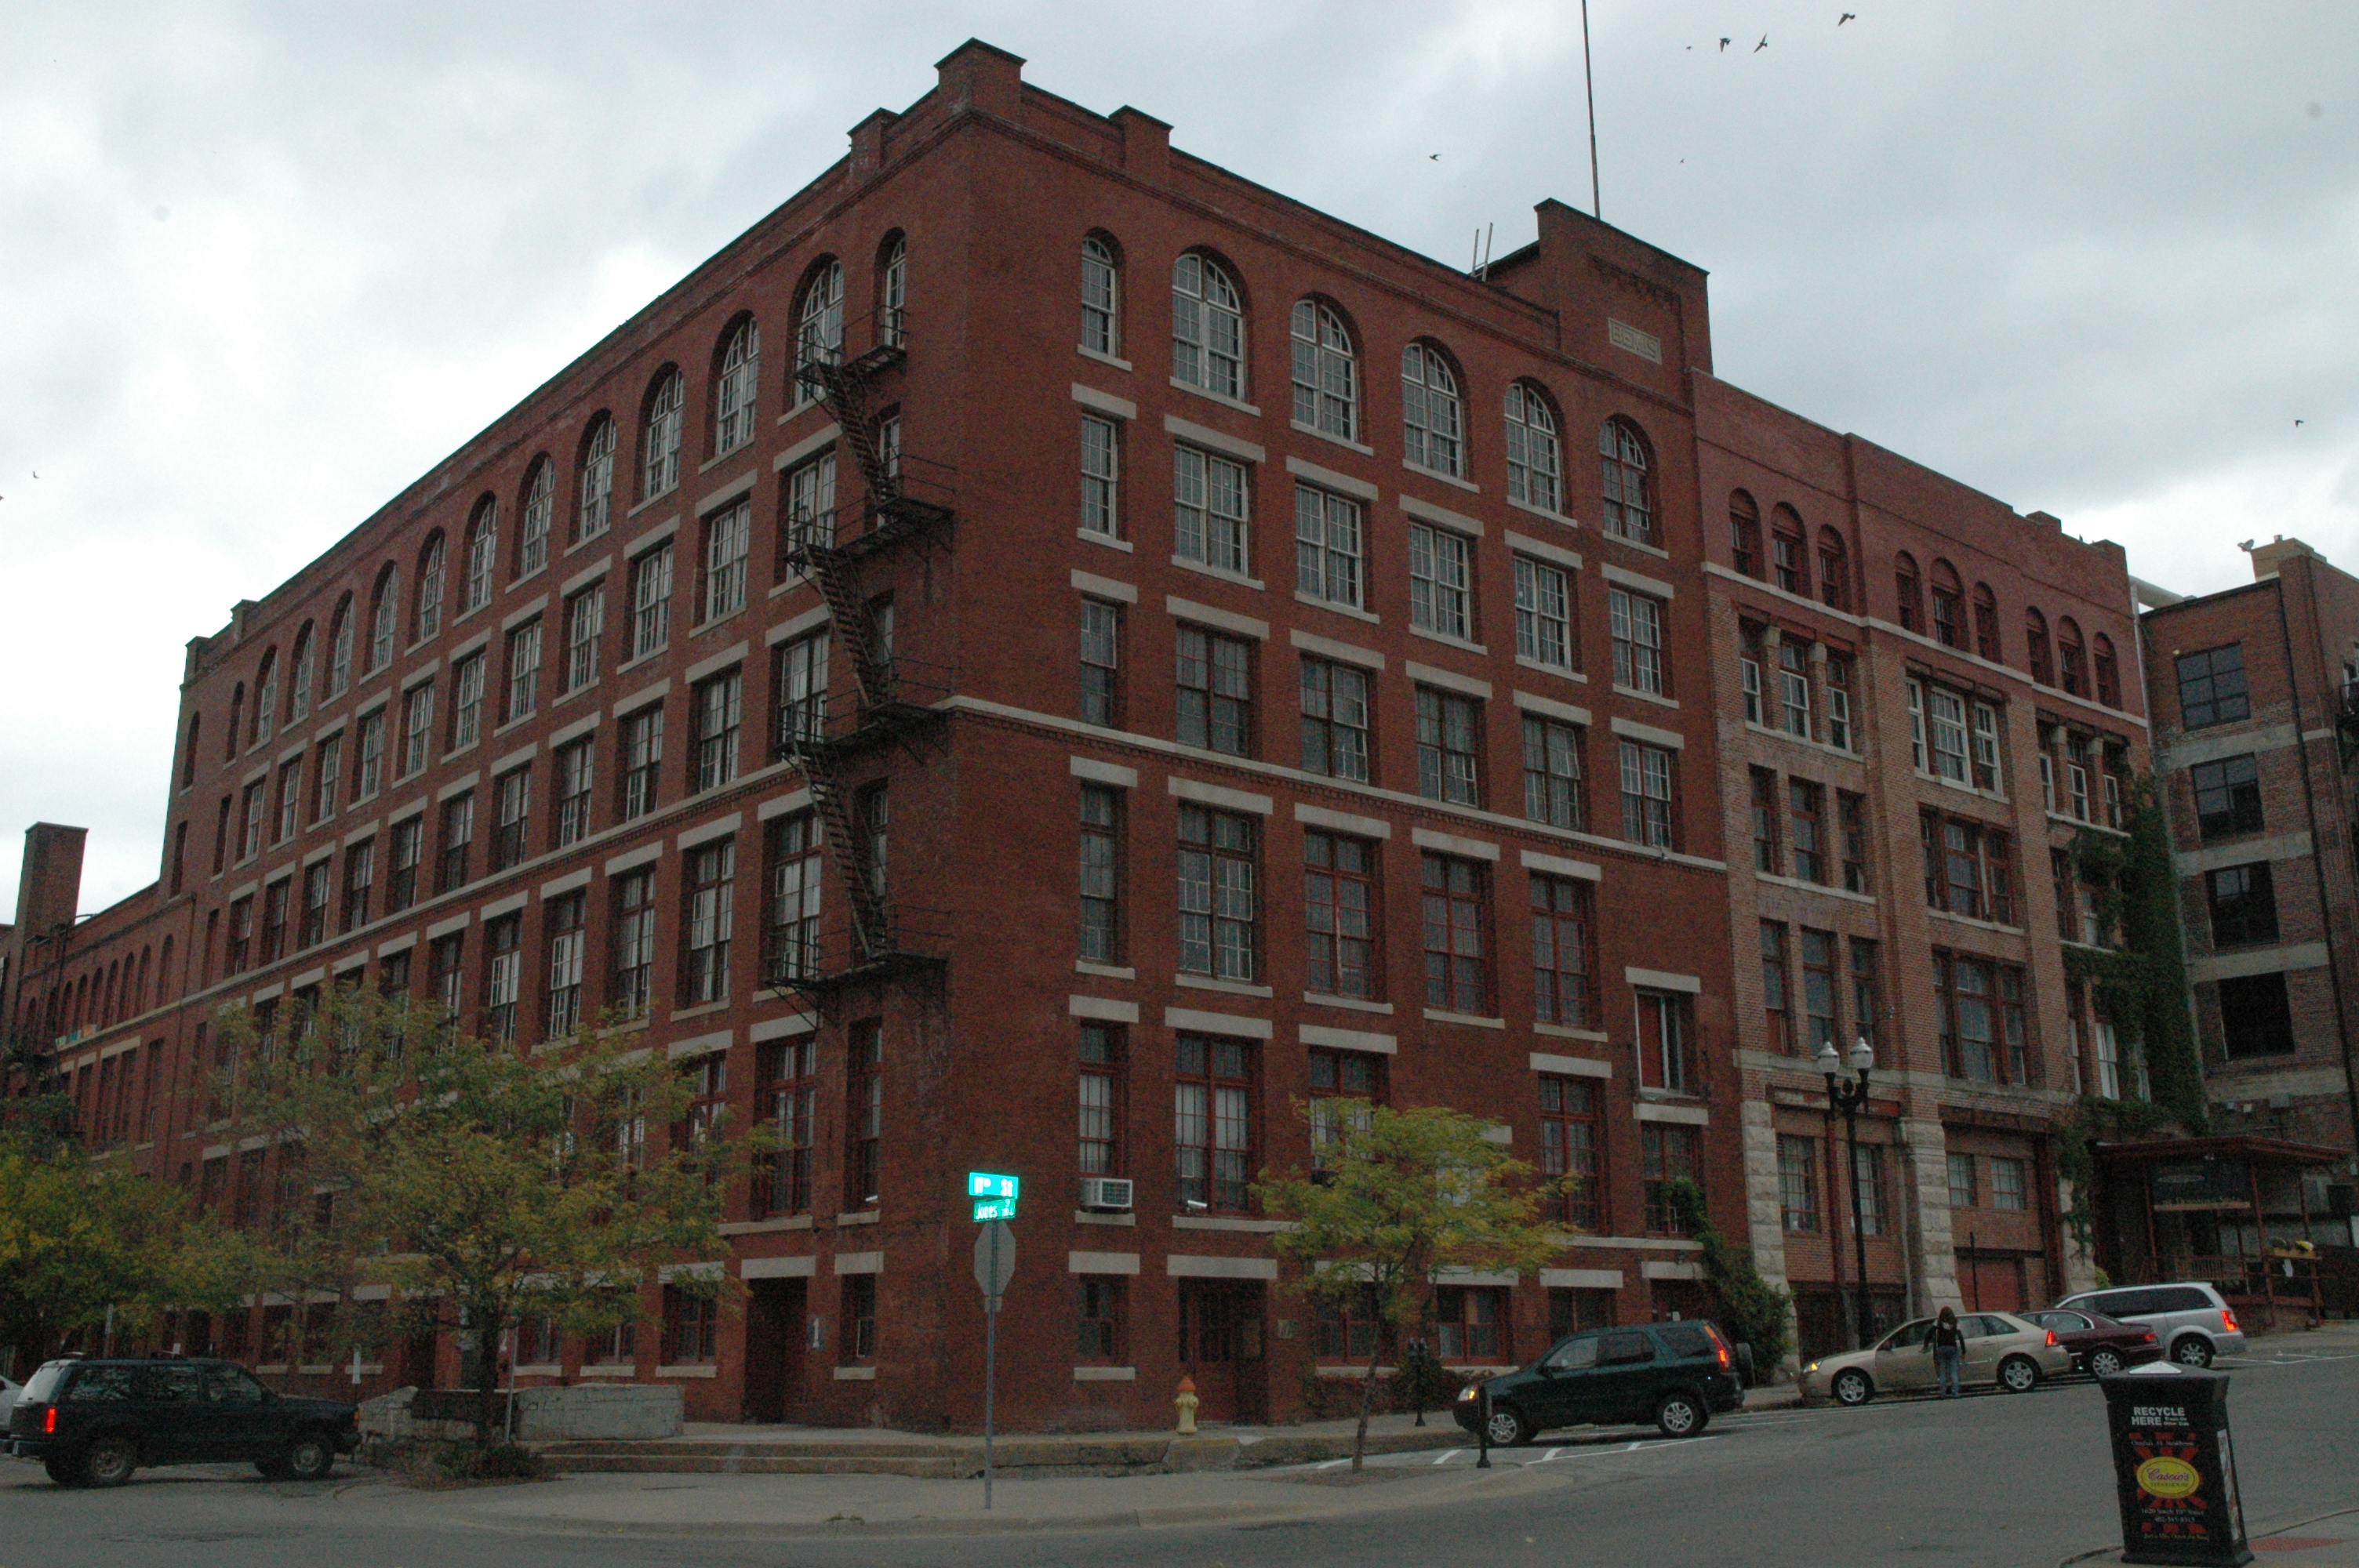 Bemis Building - Popular warehouse style that developed during the late 19th / early 20th century, now often serving as loft apartments in the 21st century in many urban communities.